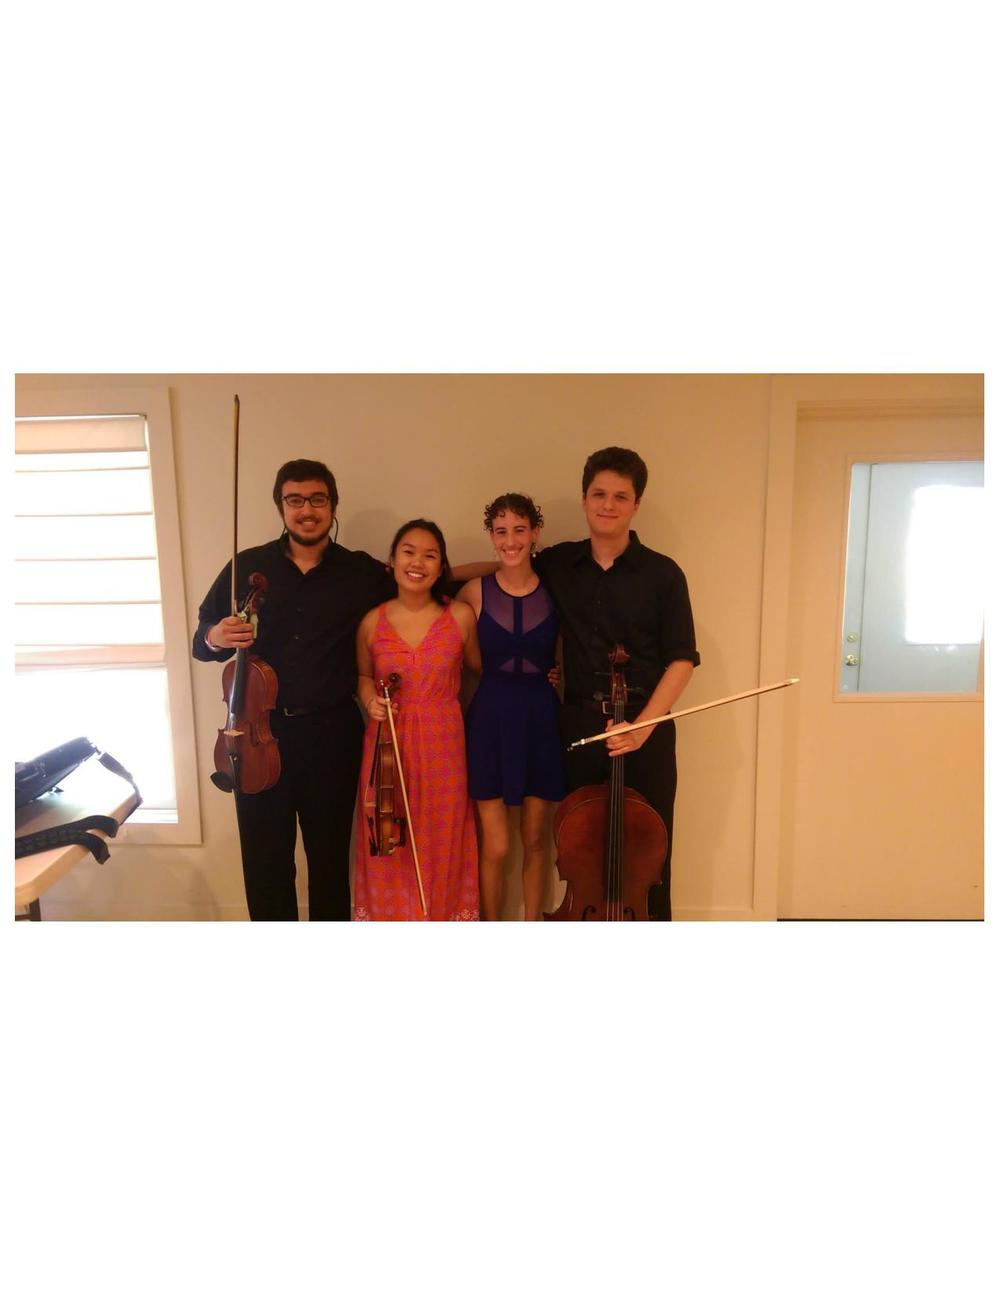 Pictured from left to right:  David Phillips, Courtney Chang, Moriah Trenk, Graham Boswell